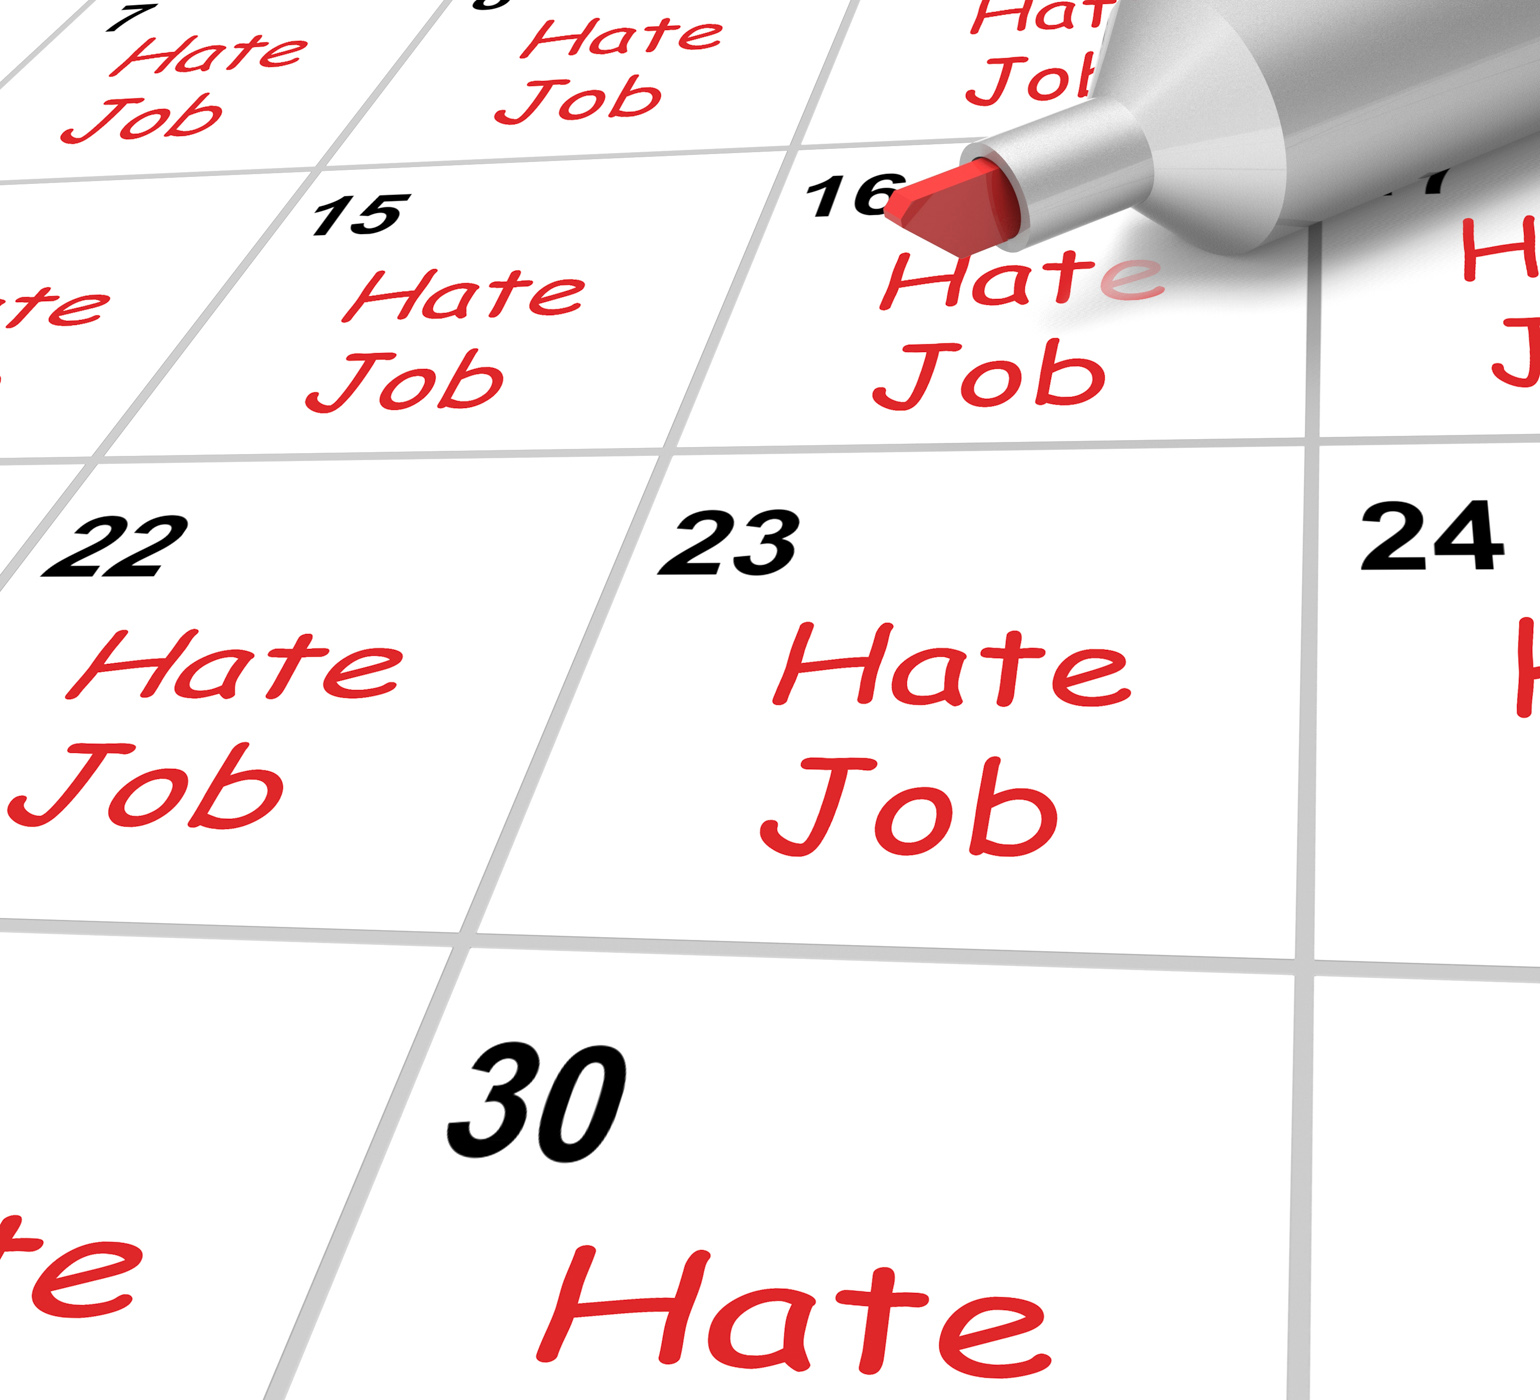 Calendar Photography Jobs : Free photo hate job calendar shows loathing work and